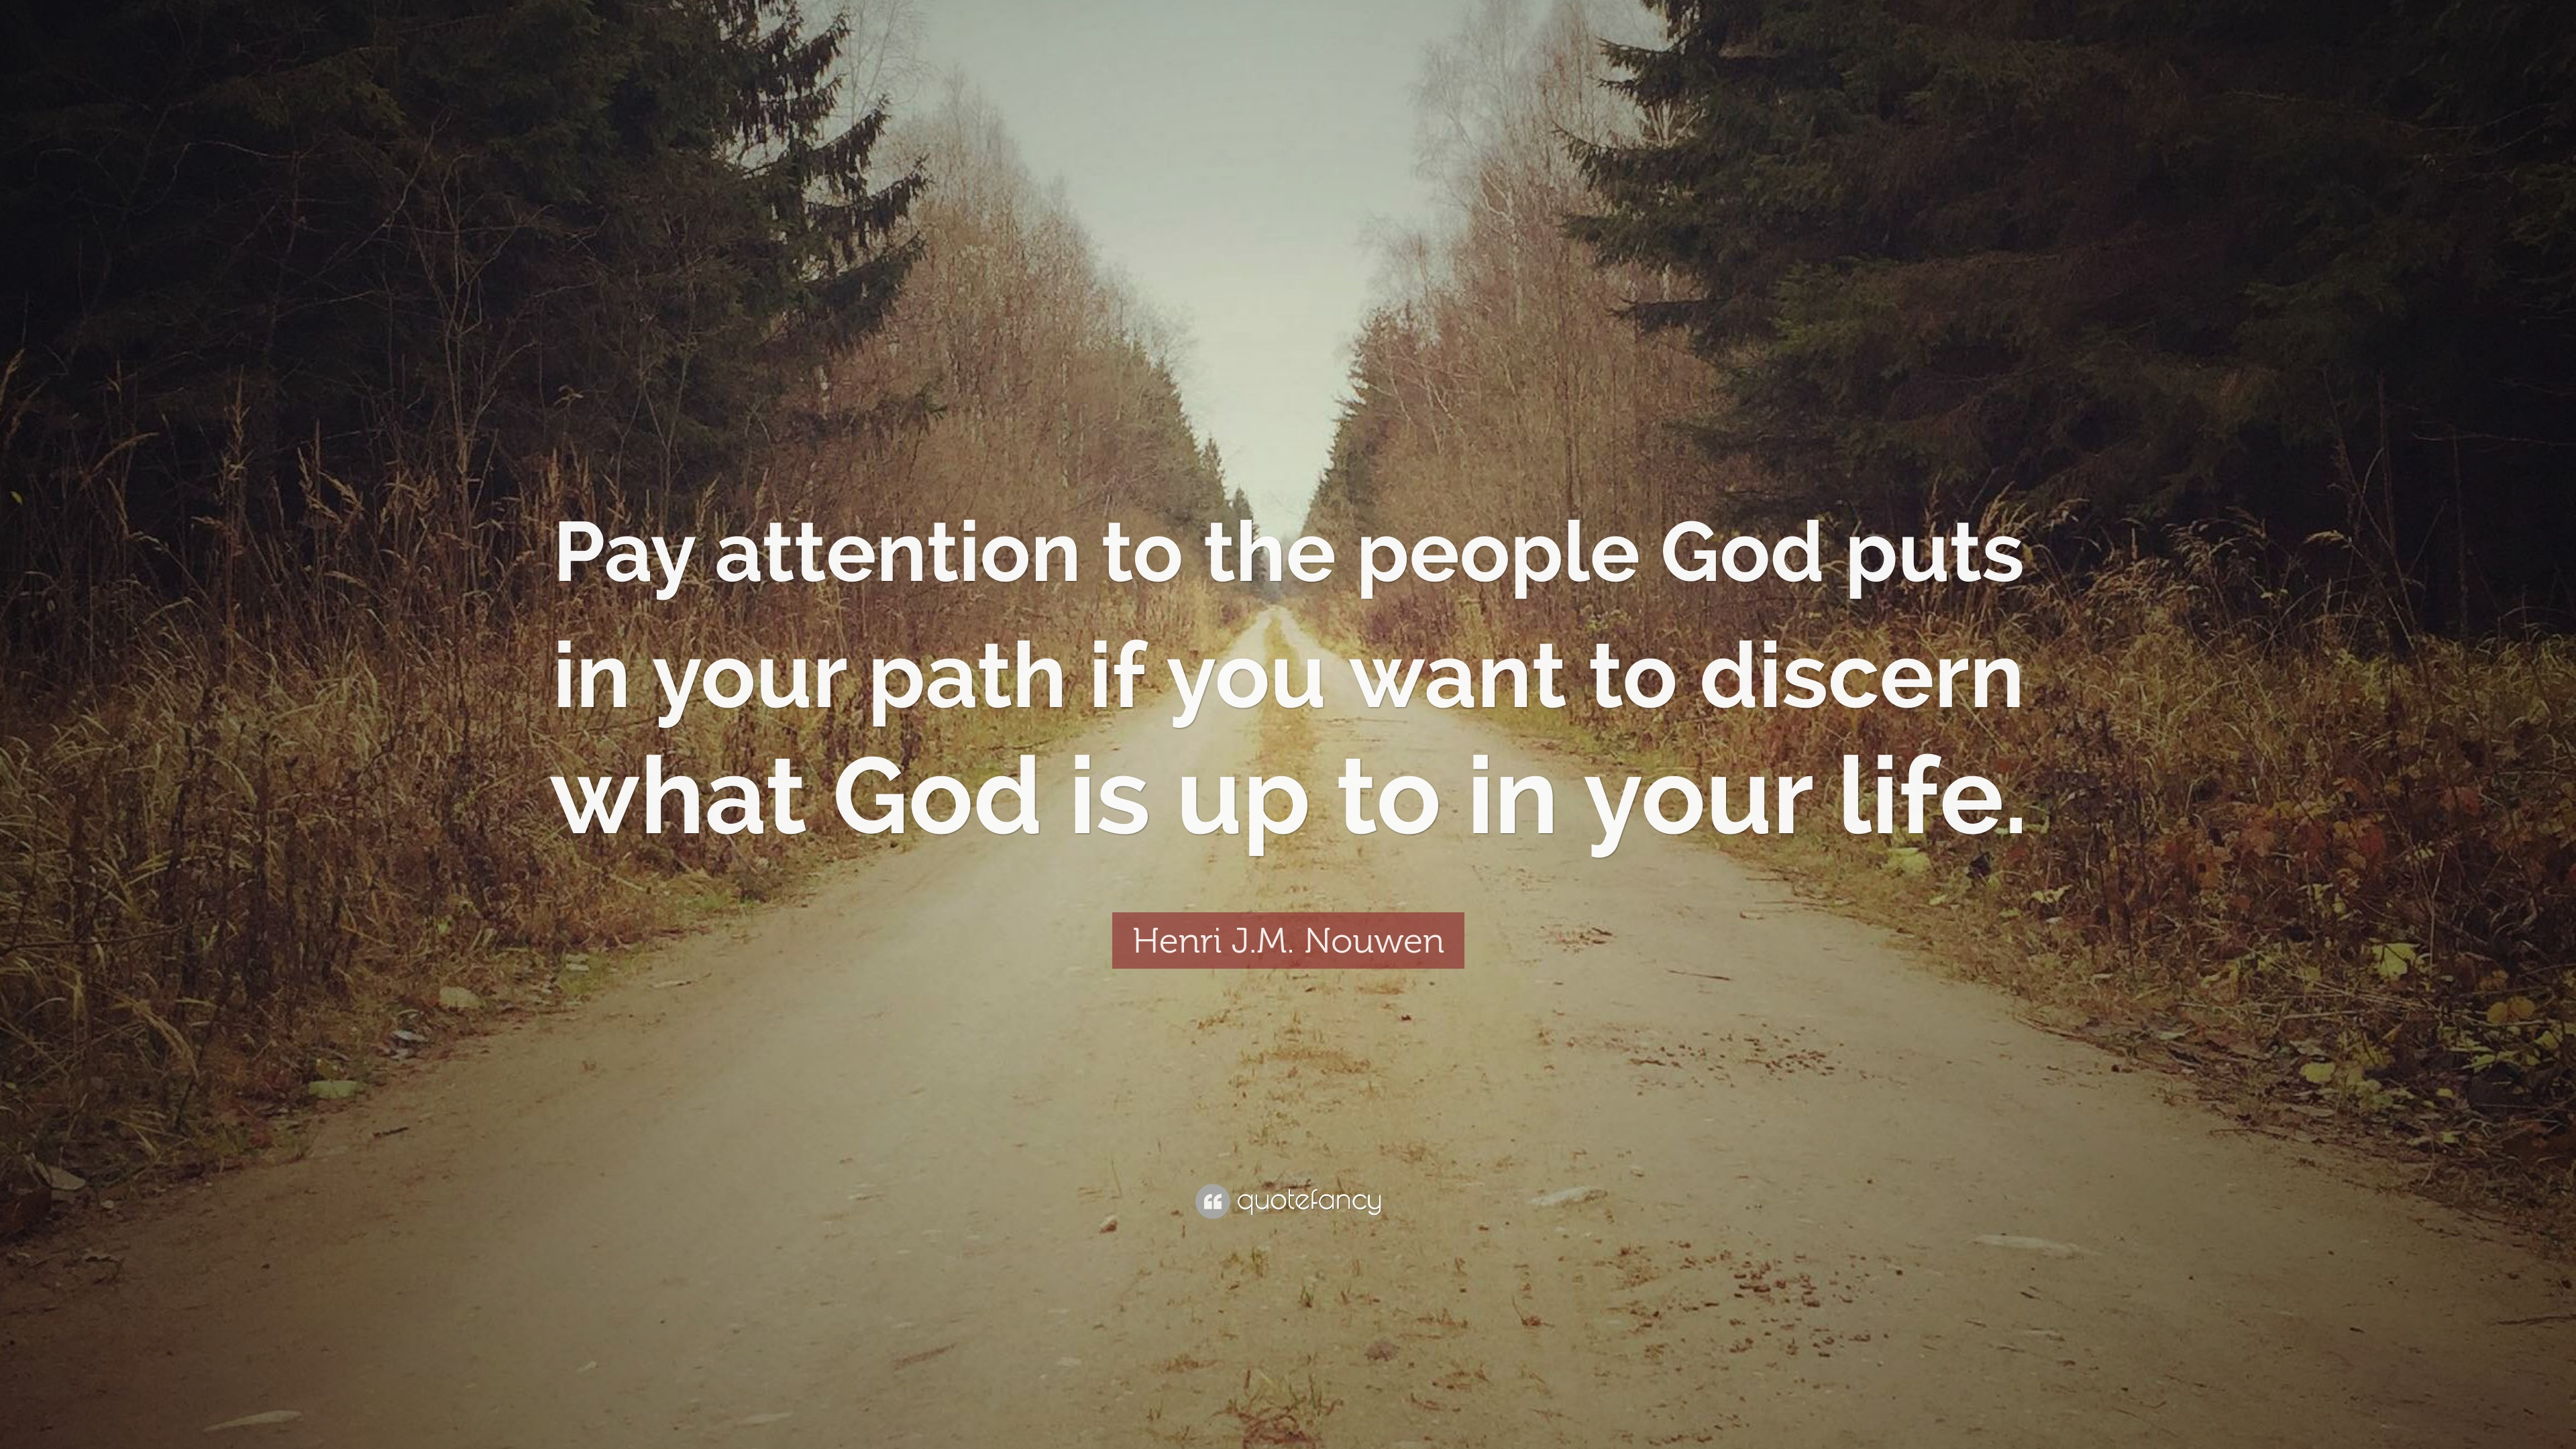 Henri J.M. Nouwen Quote: Pay attention to the people God